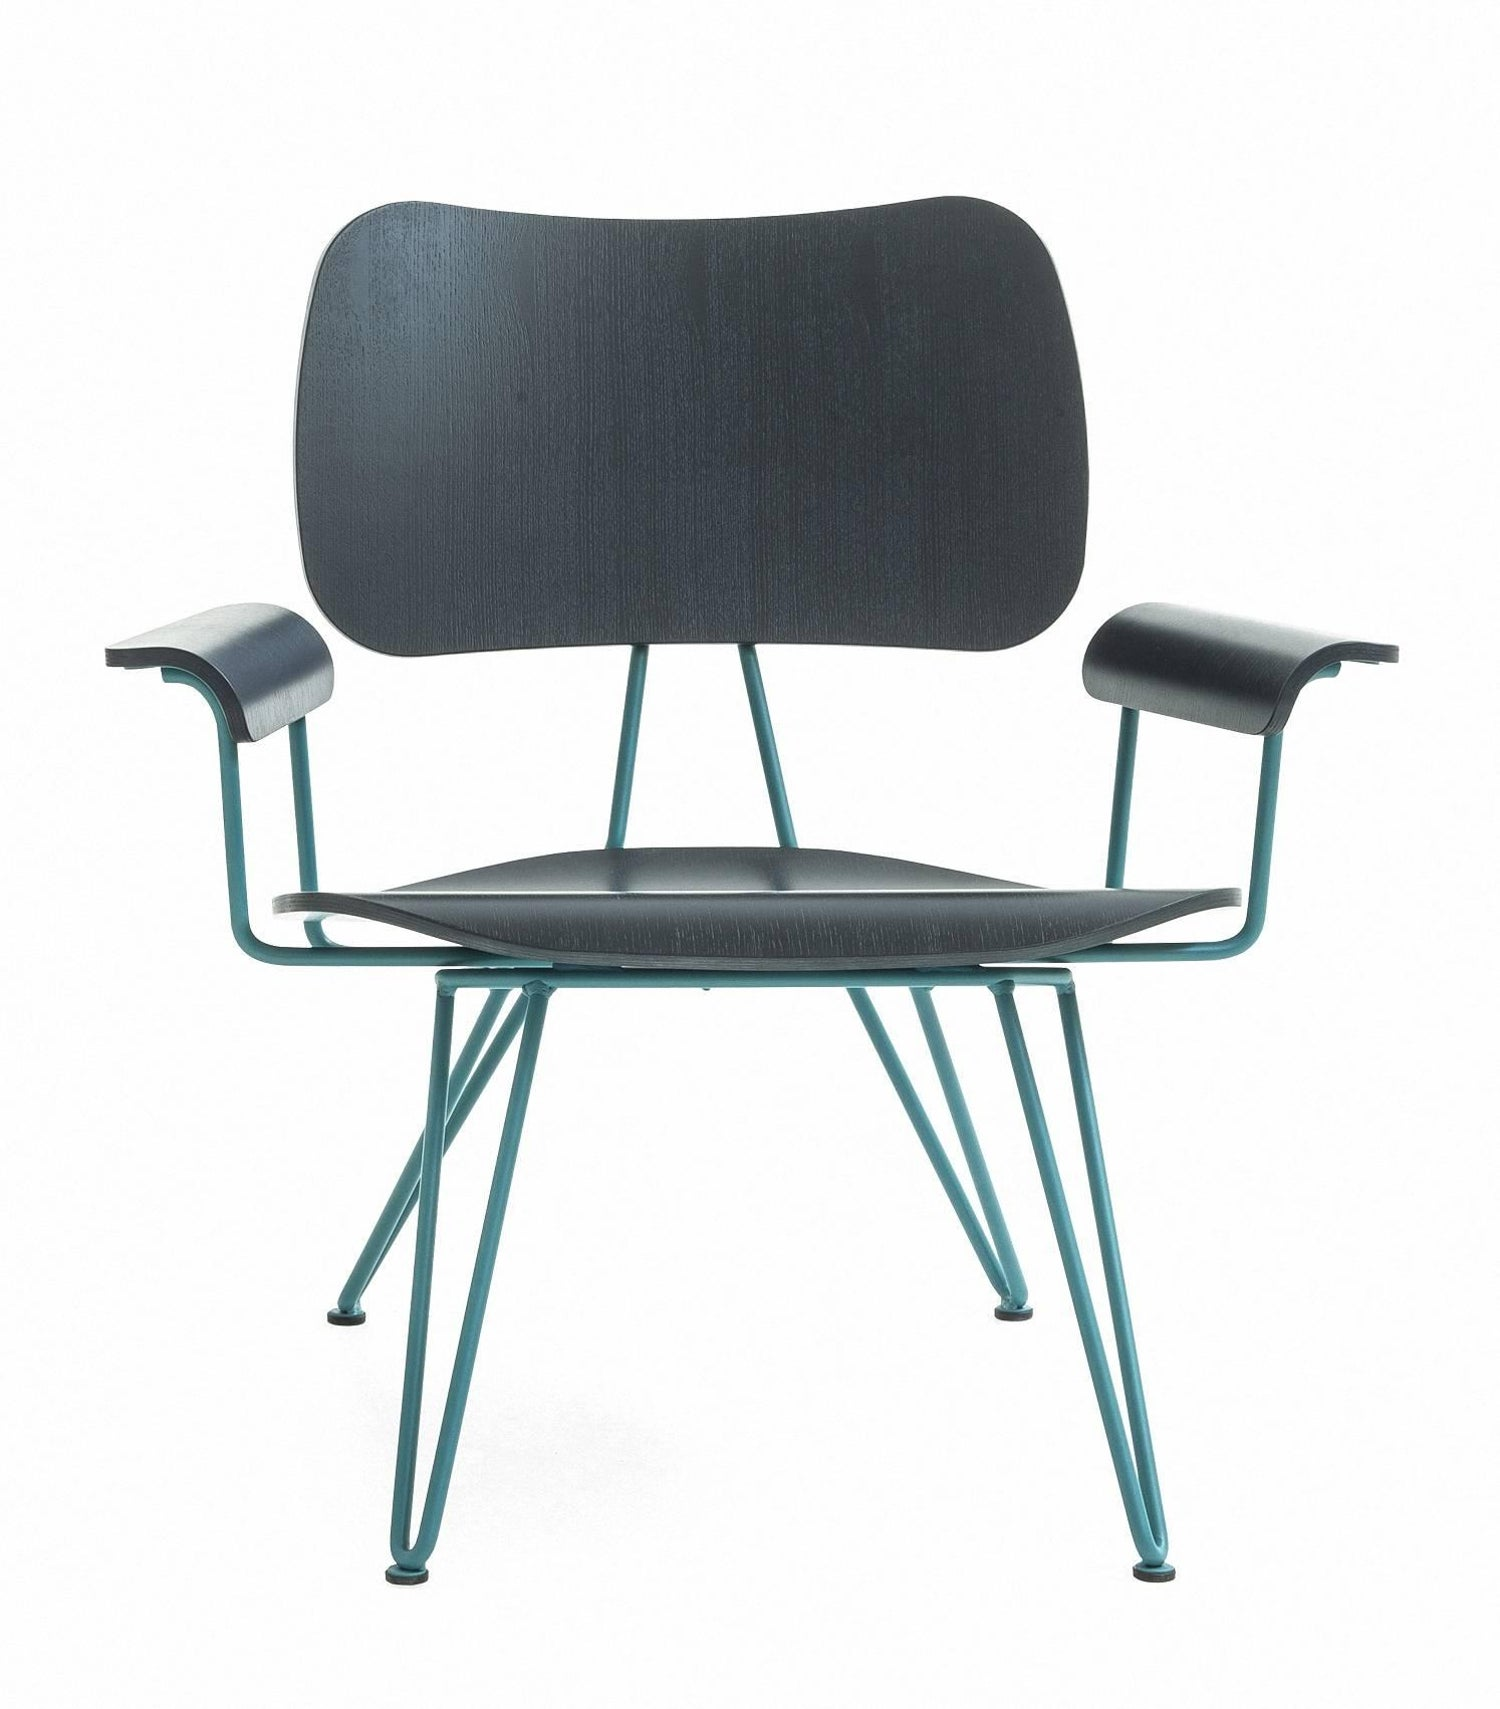 Overdyed Aniline Dyed Ash Plywood And Steel Lounge Chair By